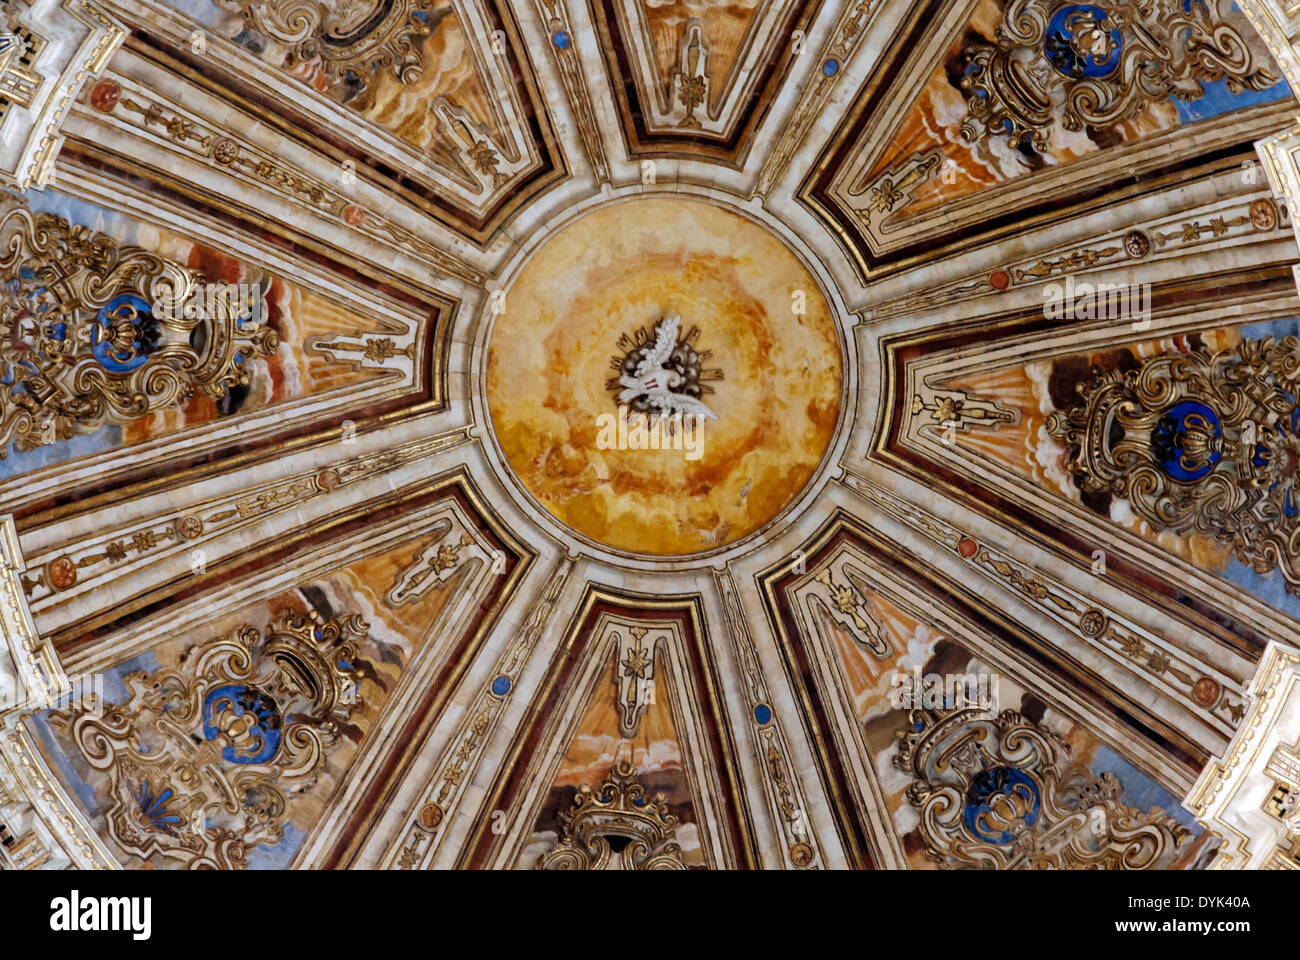 View looking upwards onto the highly decorated dome of the New Cathedral, Salamanca, Castilla y León, Spain. - Stock Image